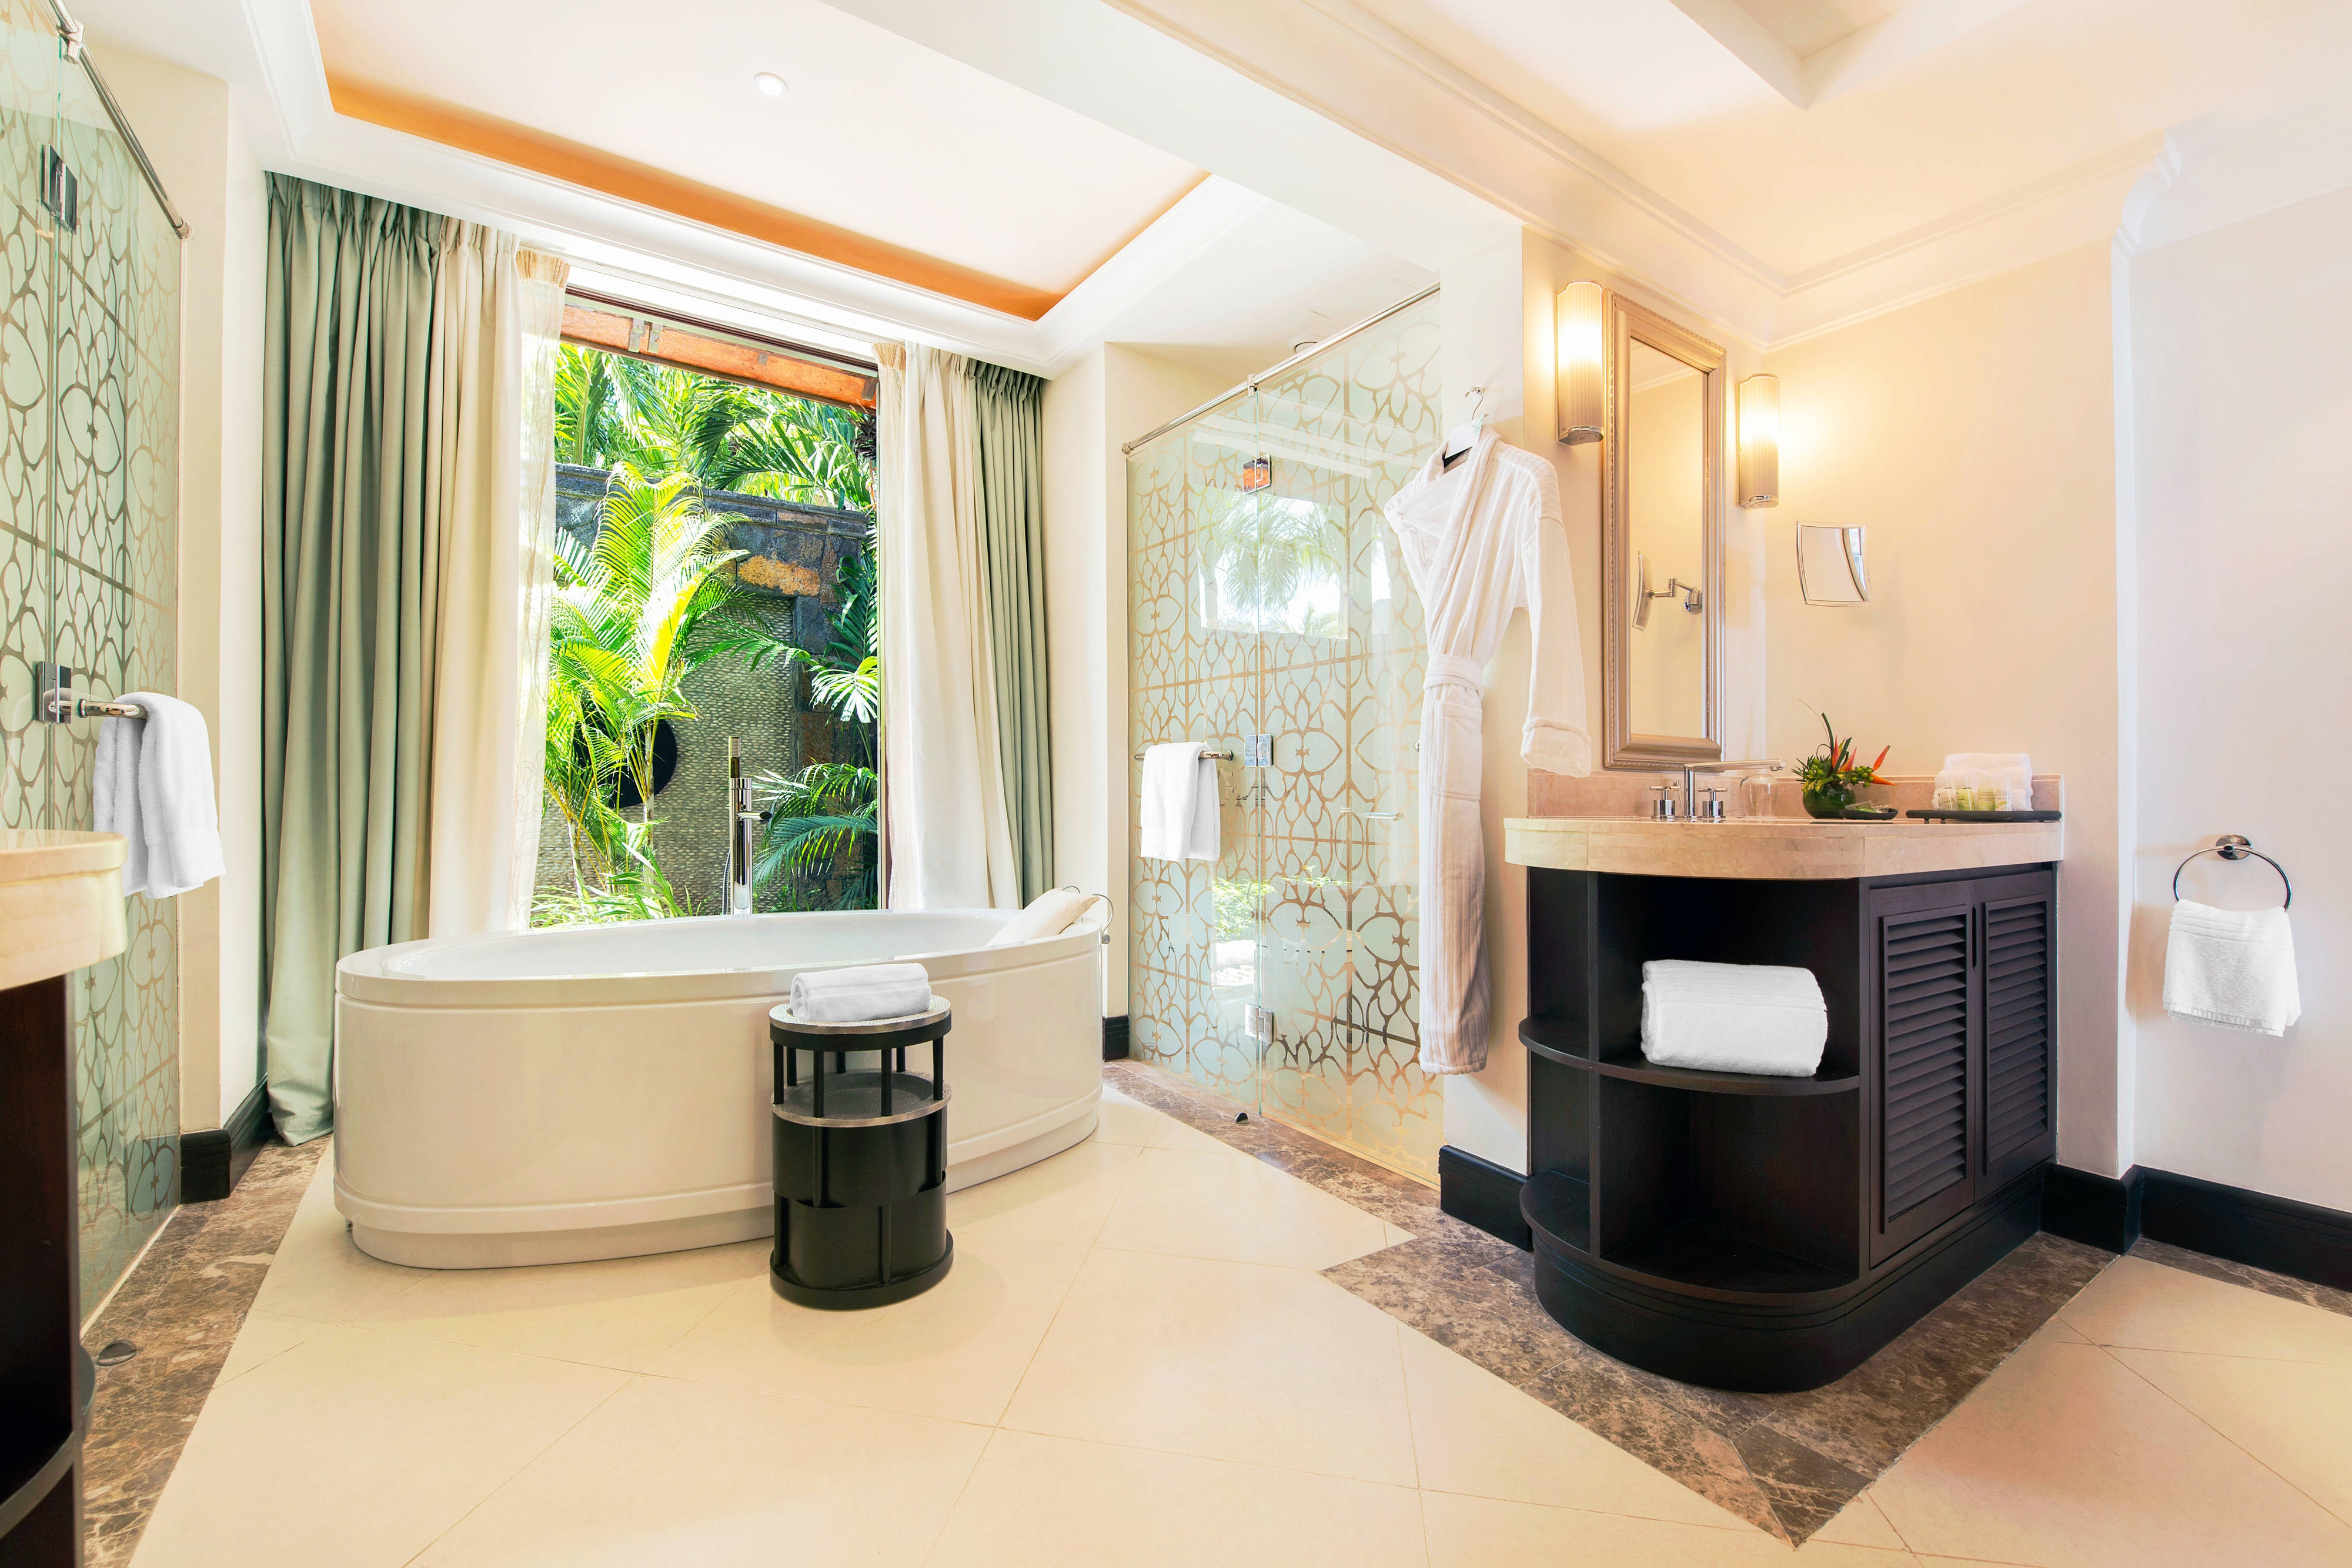 Banyan Suite - Bathroom